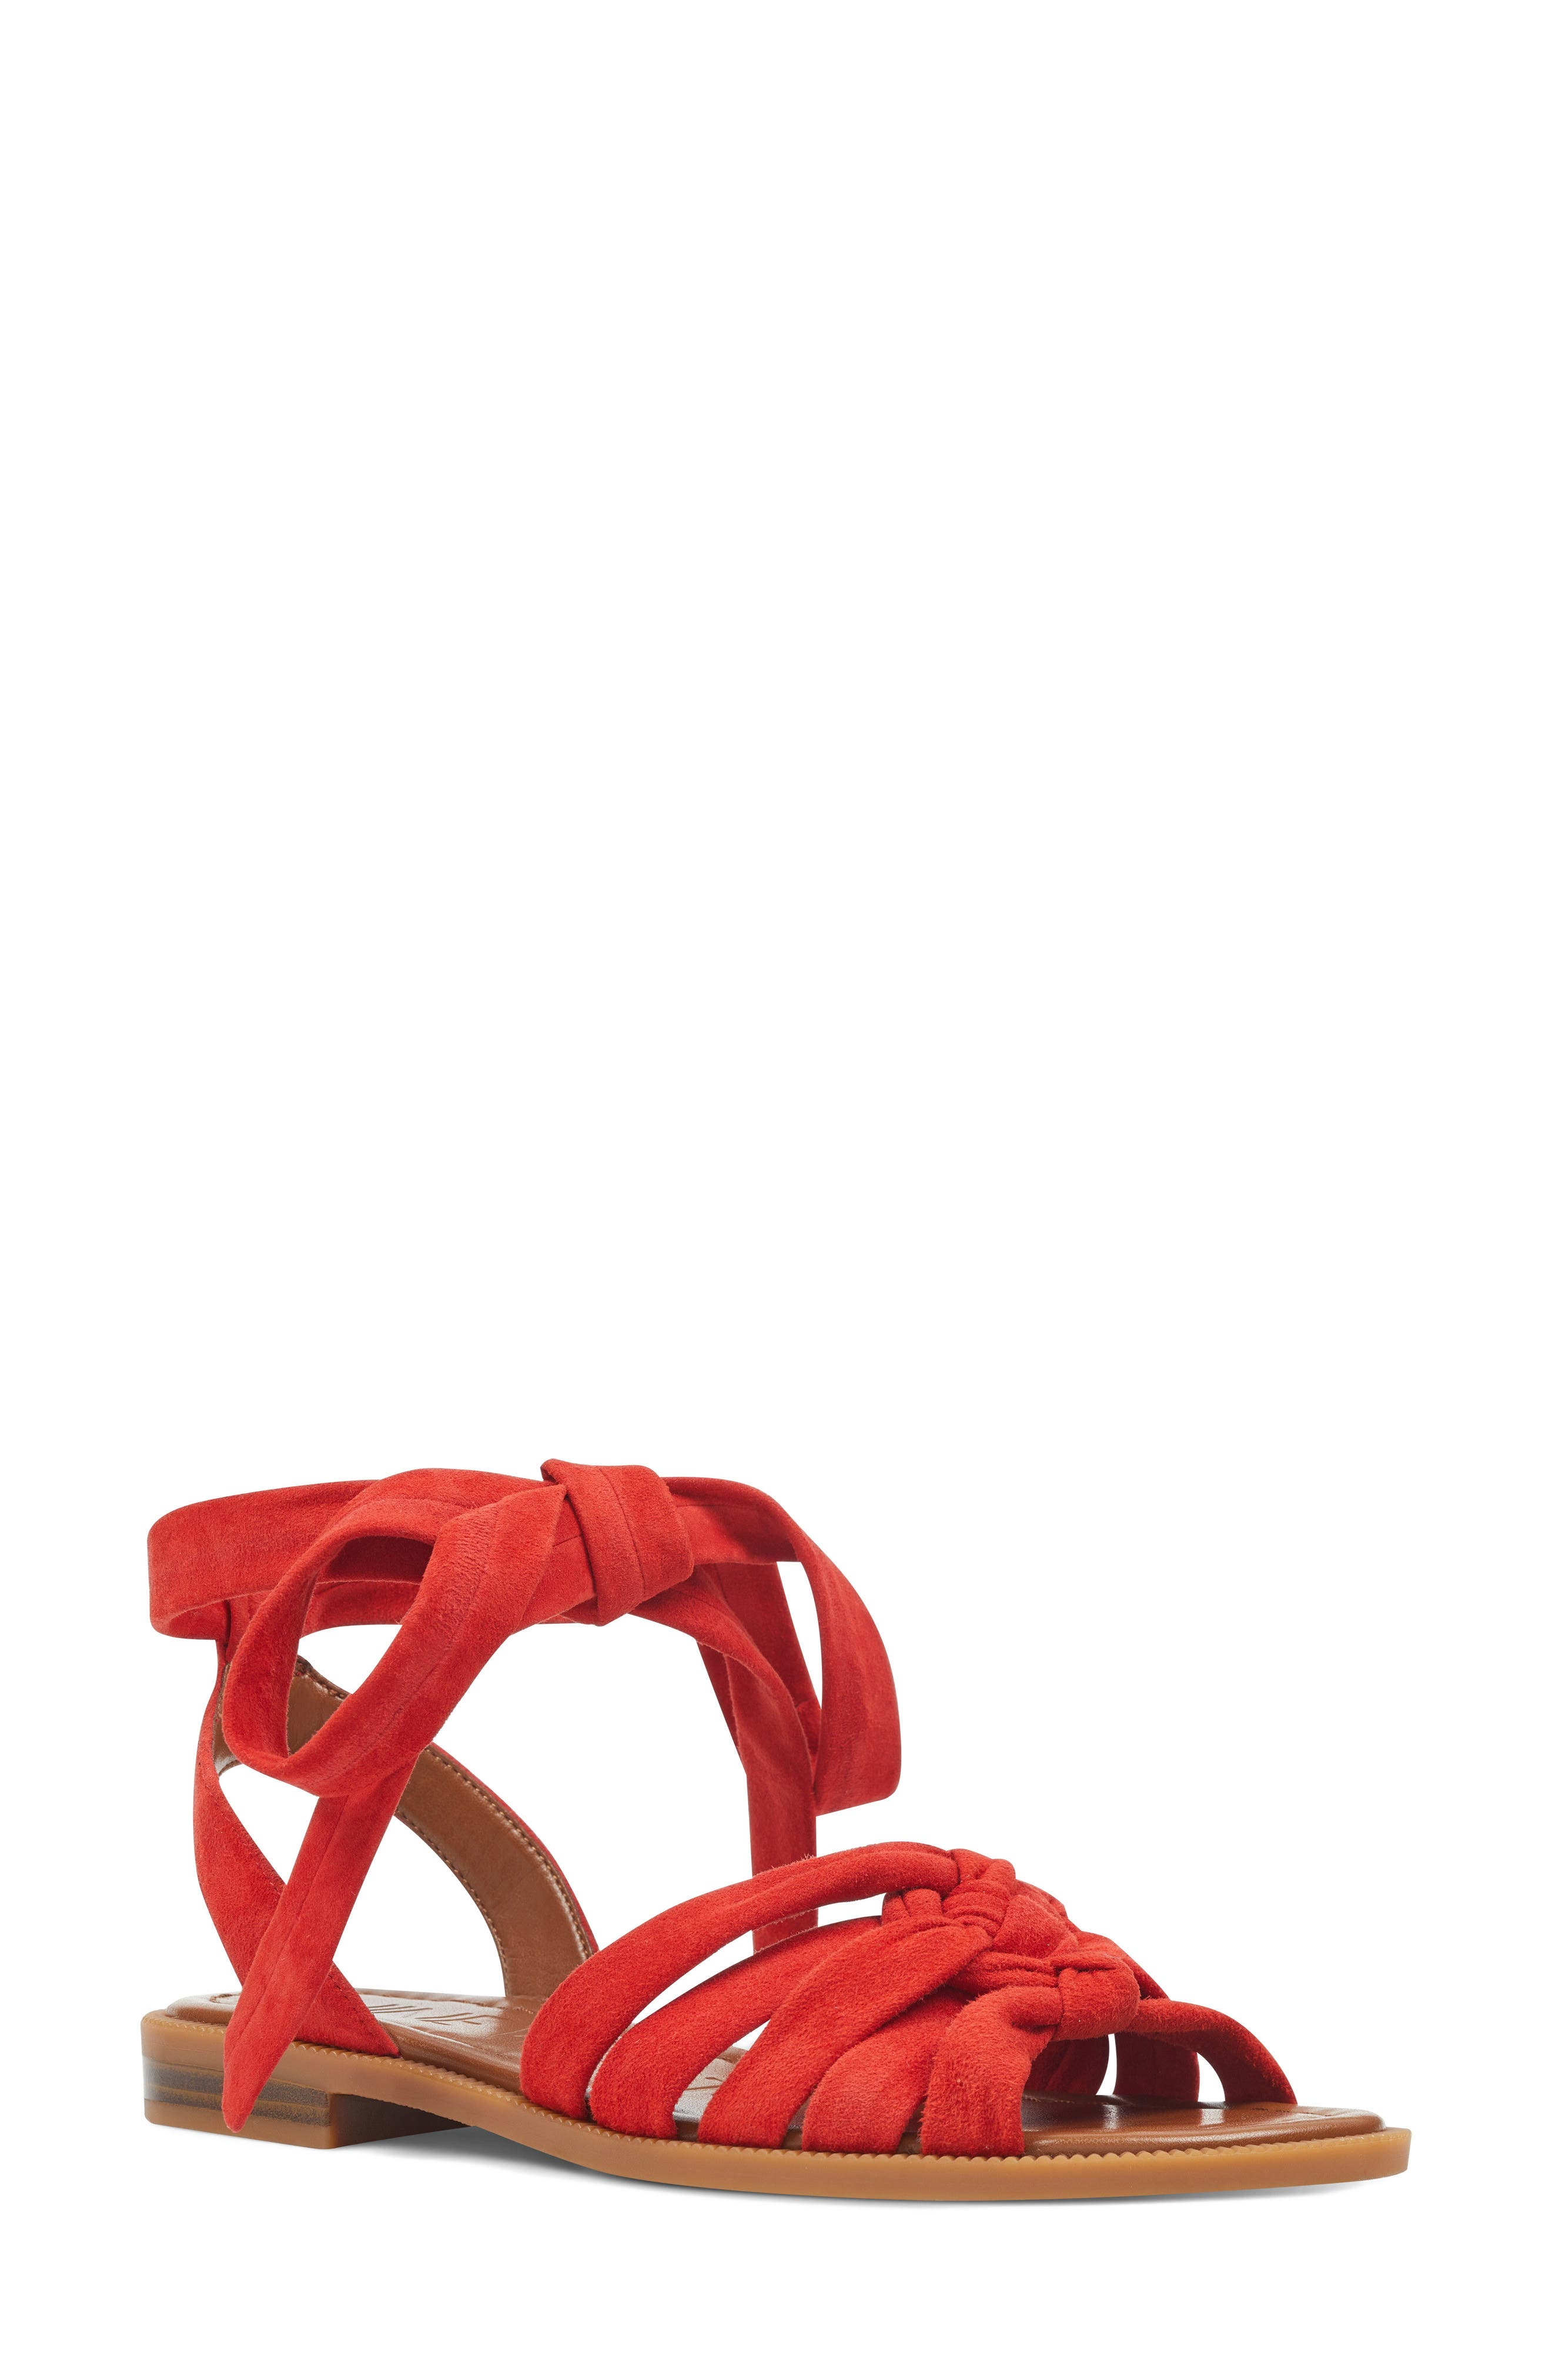 Xameera Knotted Sandal,                             Main thumbnail 1, color,                             Red Suede